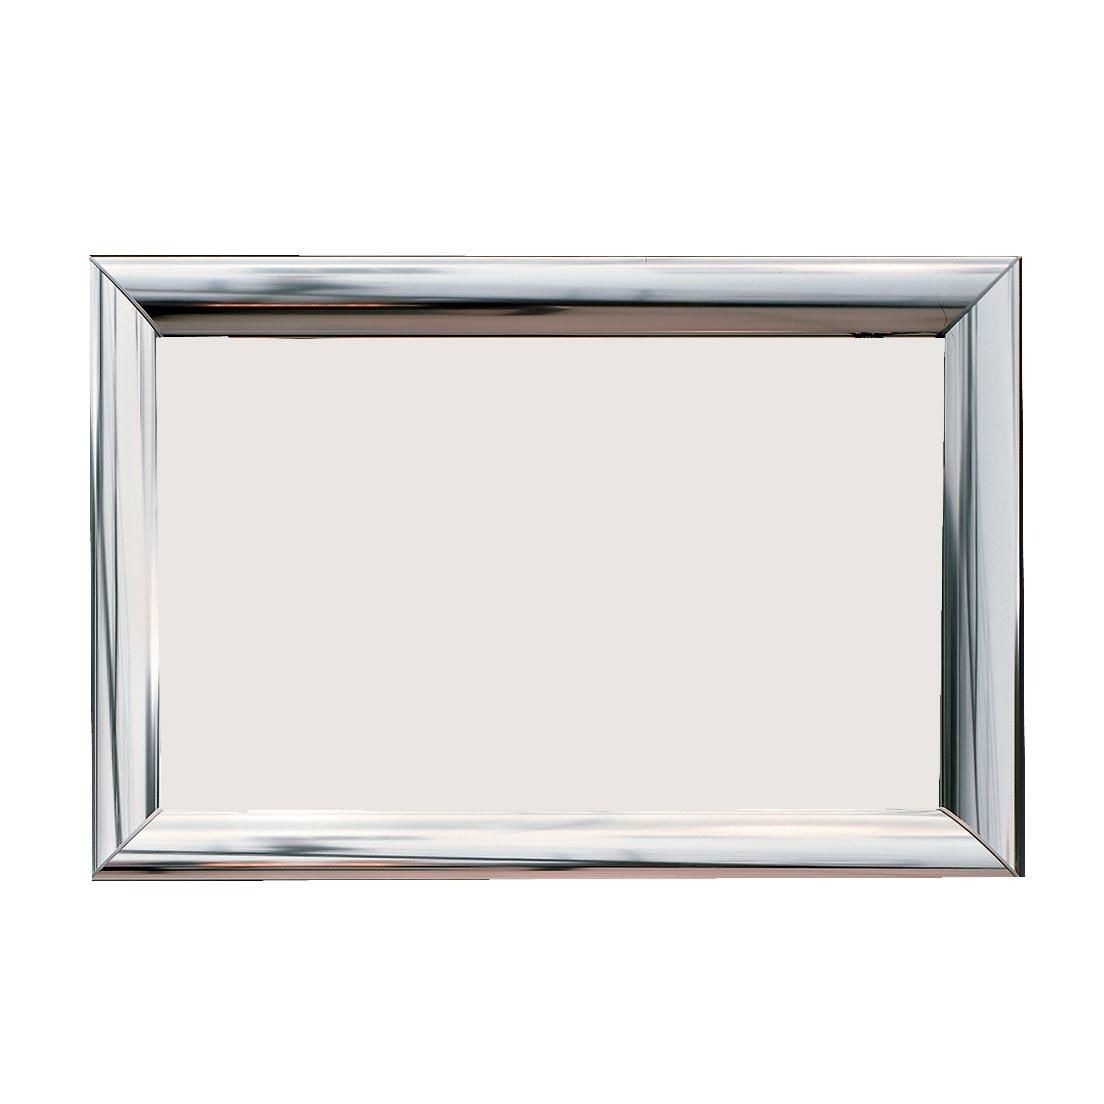 Product Image Mad Mirror